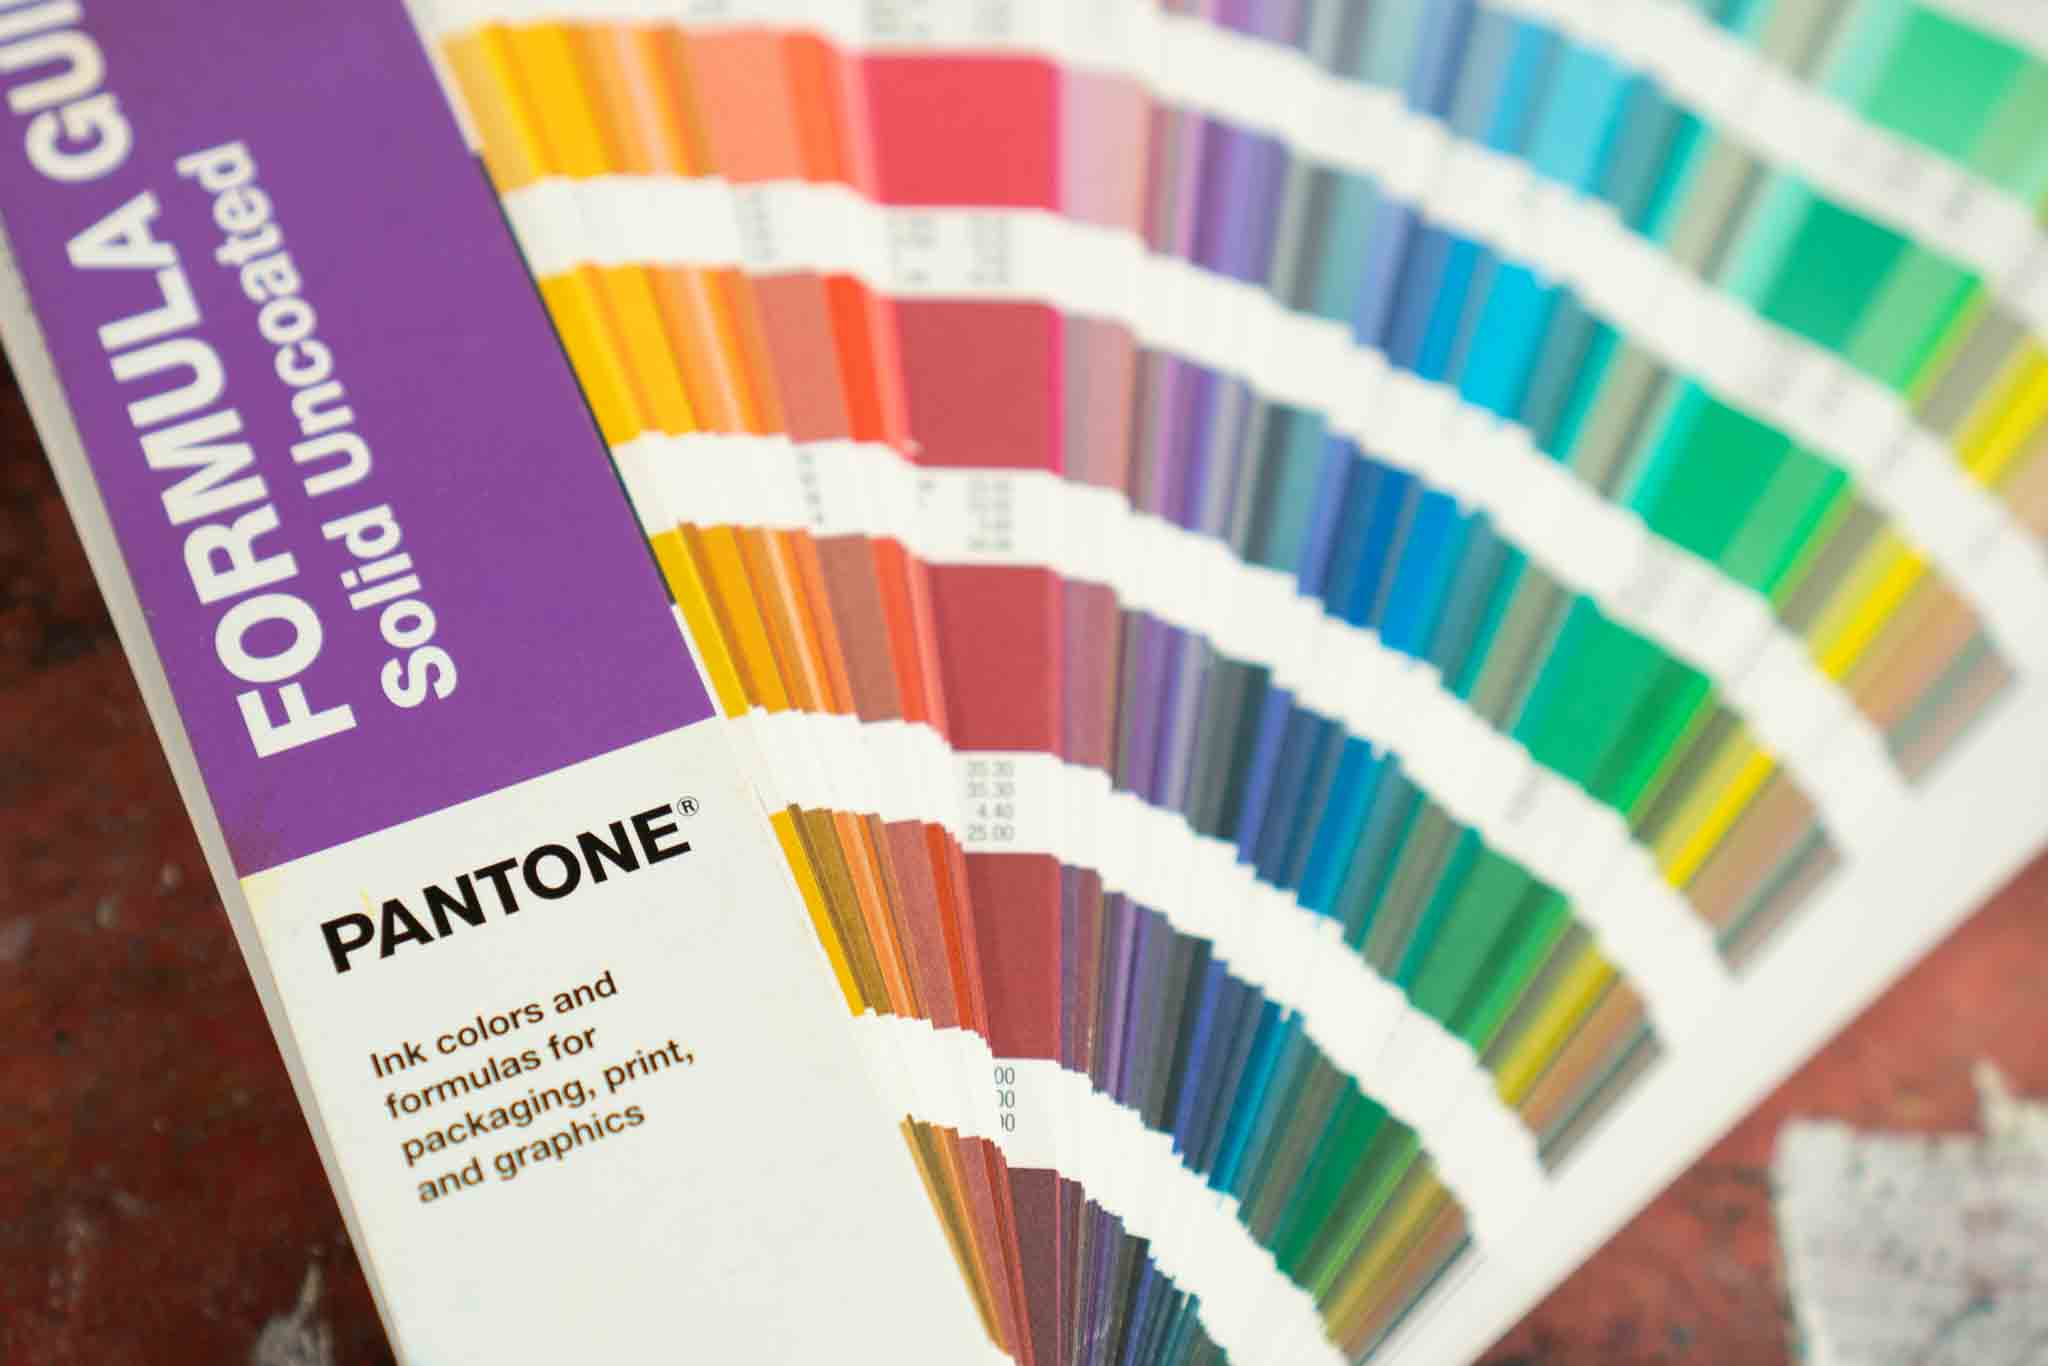 open pantone swatch book showing multiple colors and shades